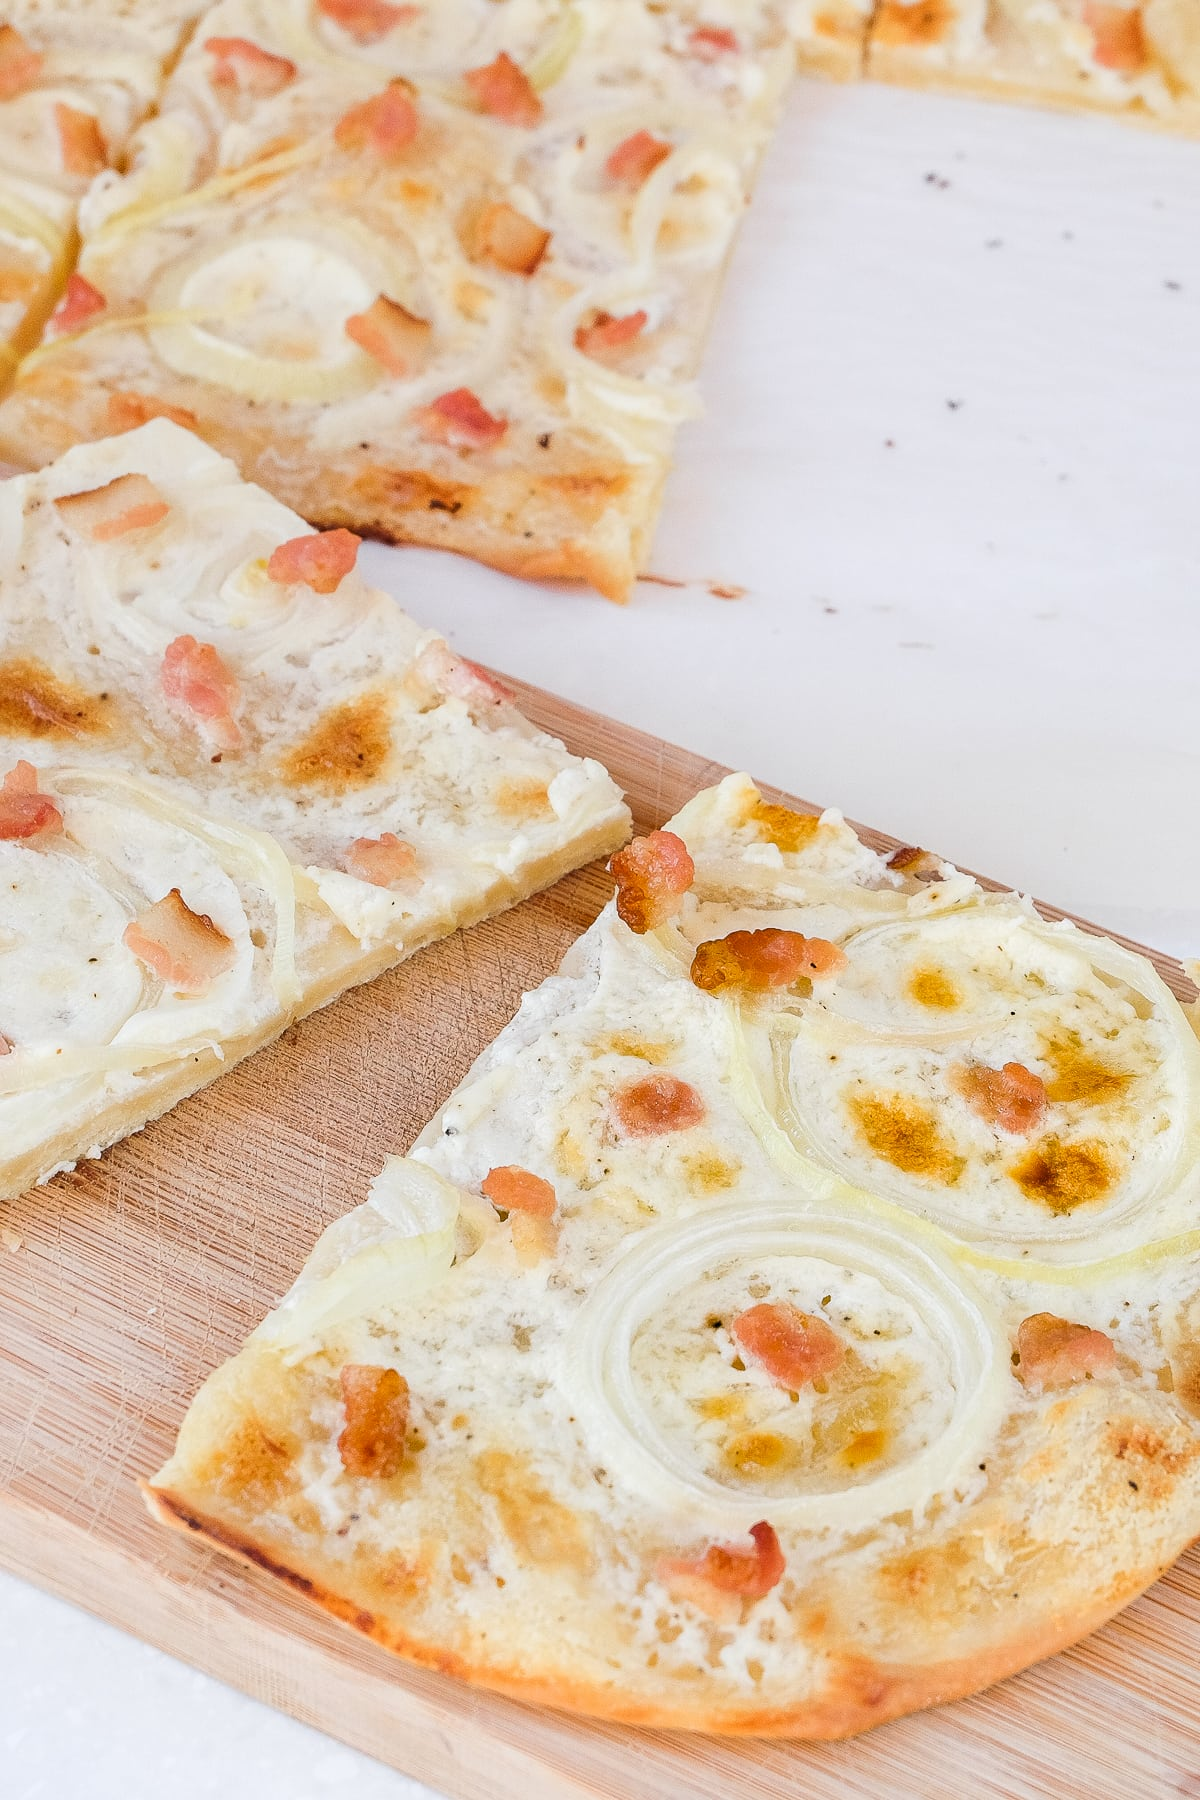 pieces of flammkuchen cut on wooden board